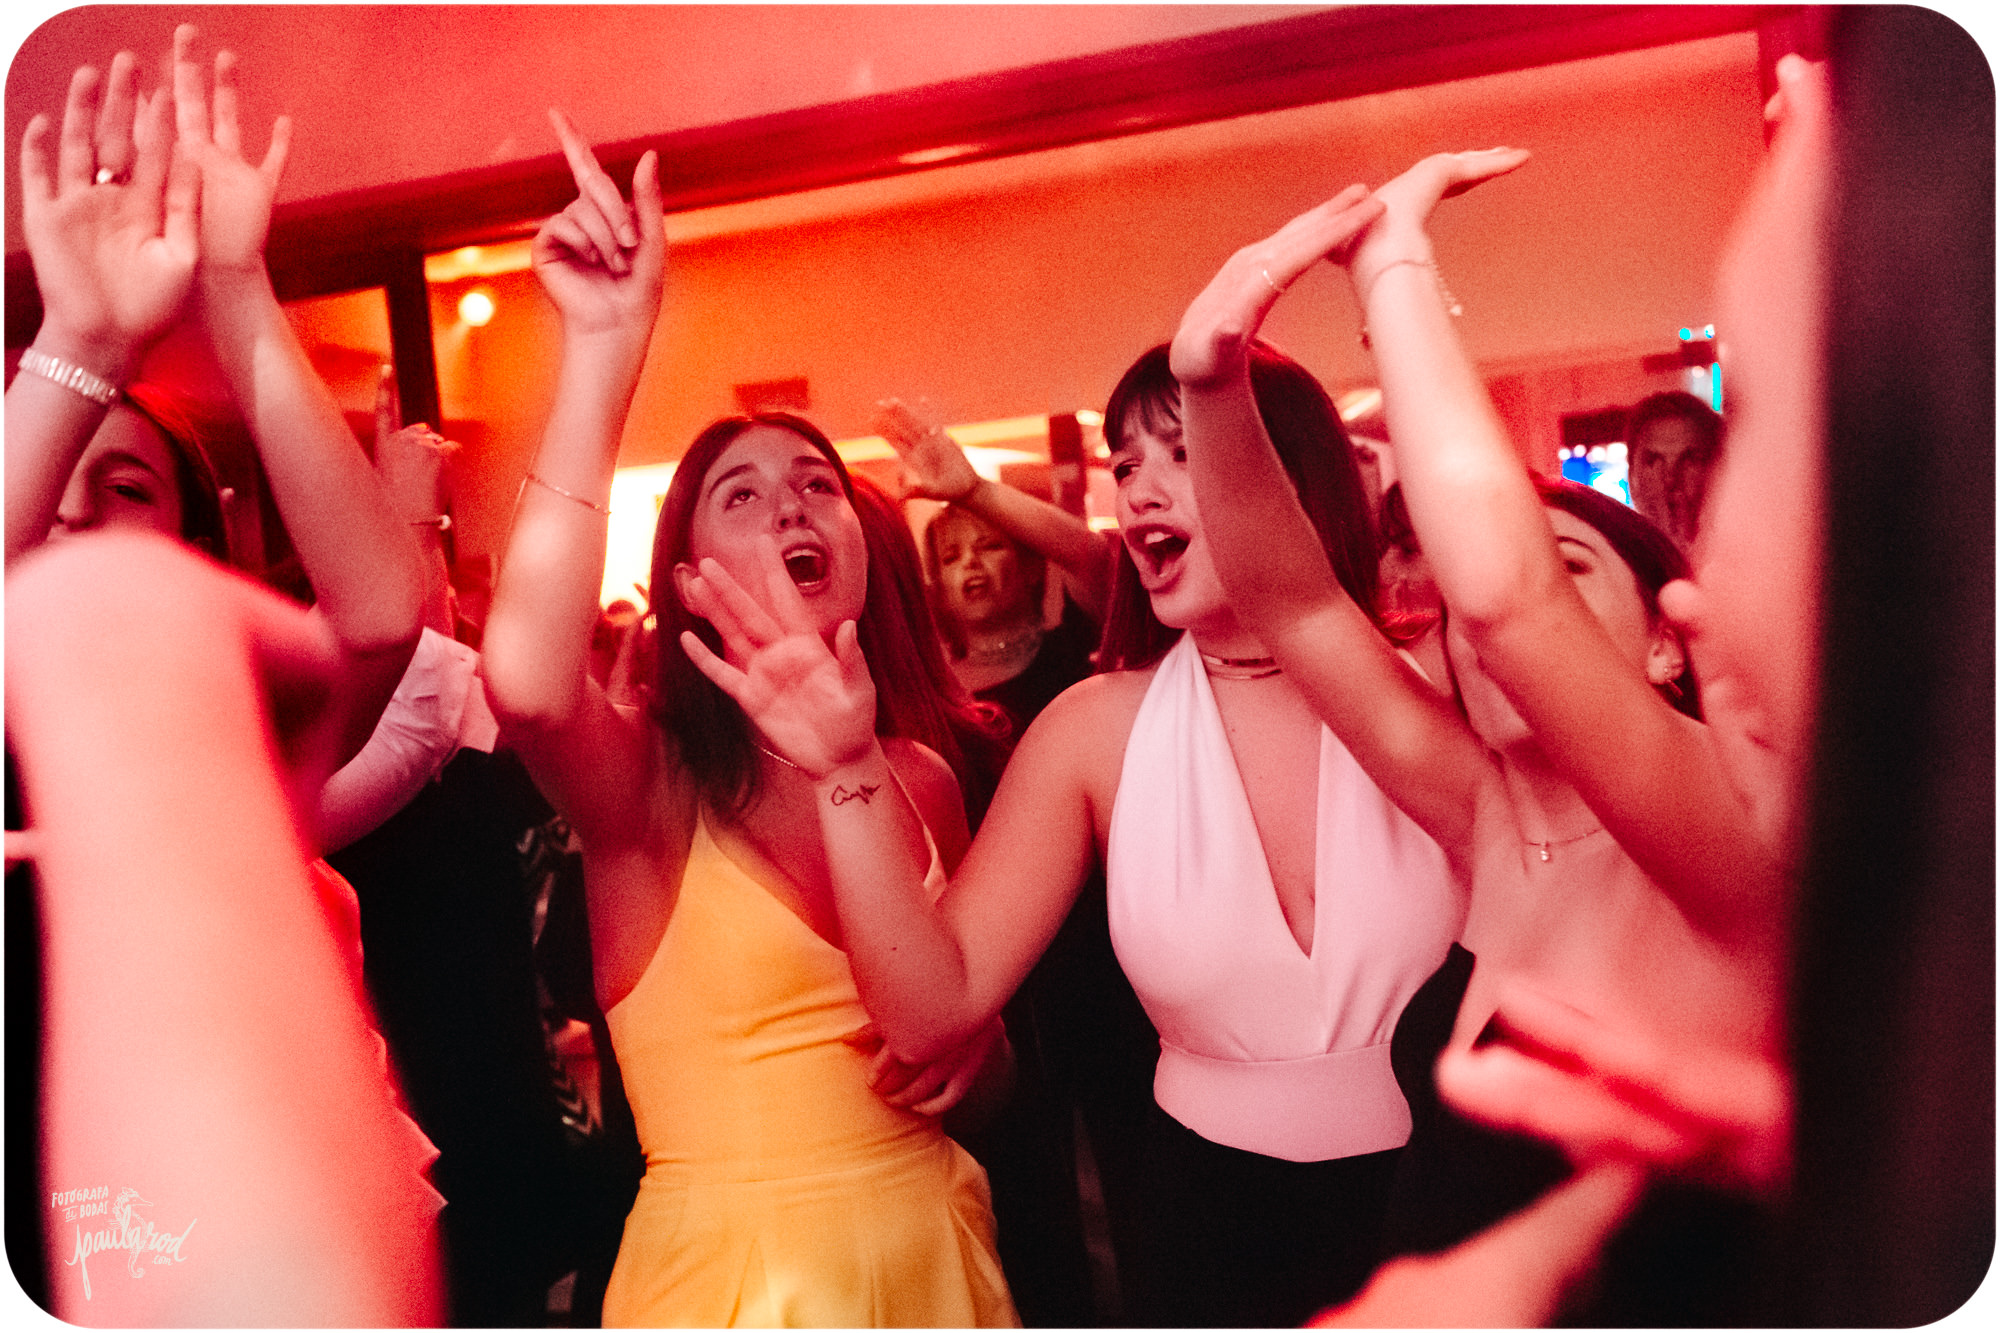 fotografia-documental-para-eventos-sociales-4 (3).jpg